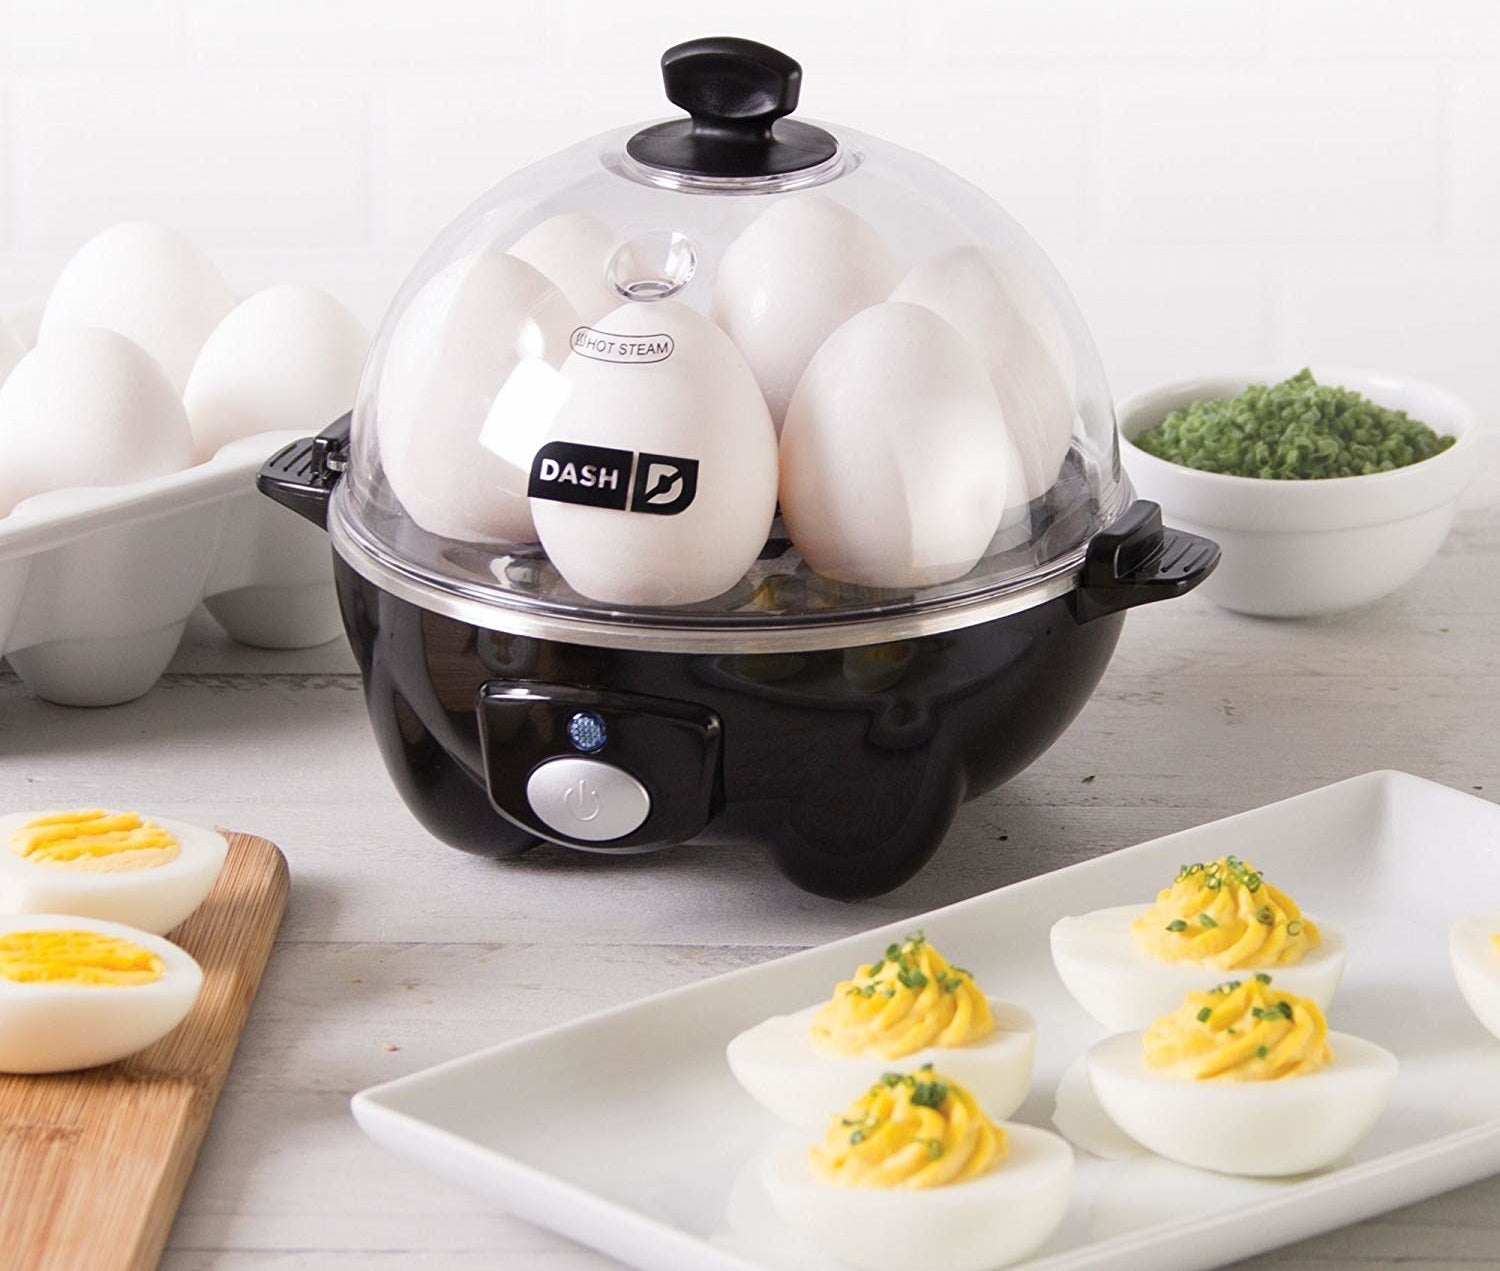 The egg cooker in black